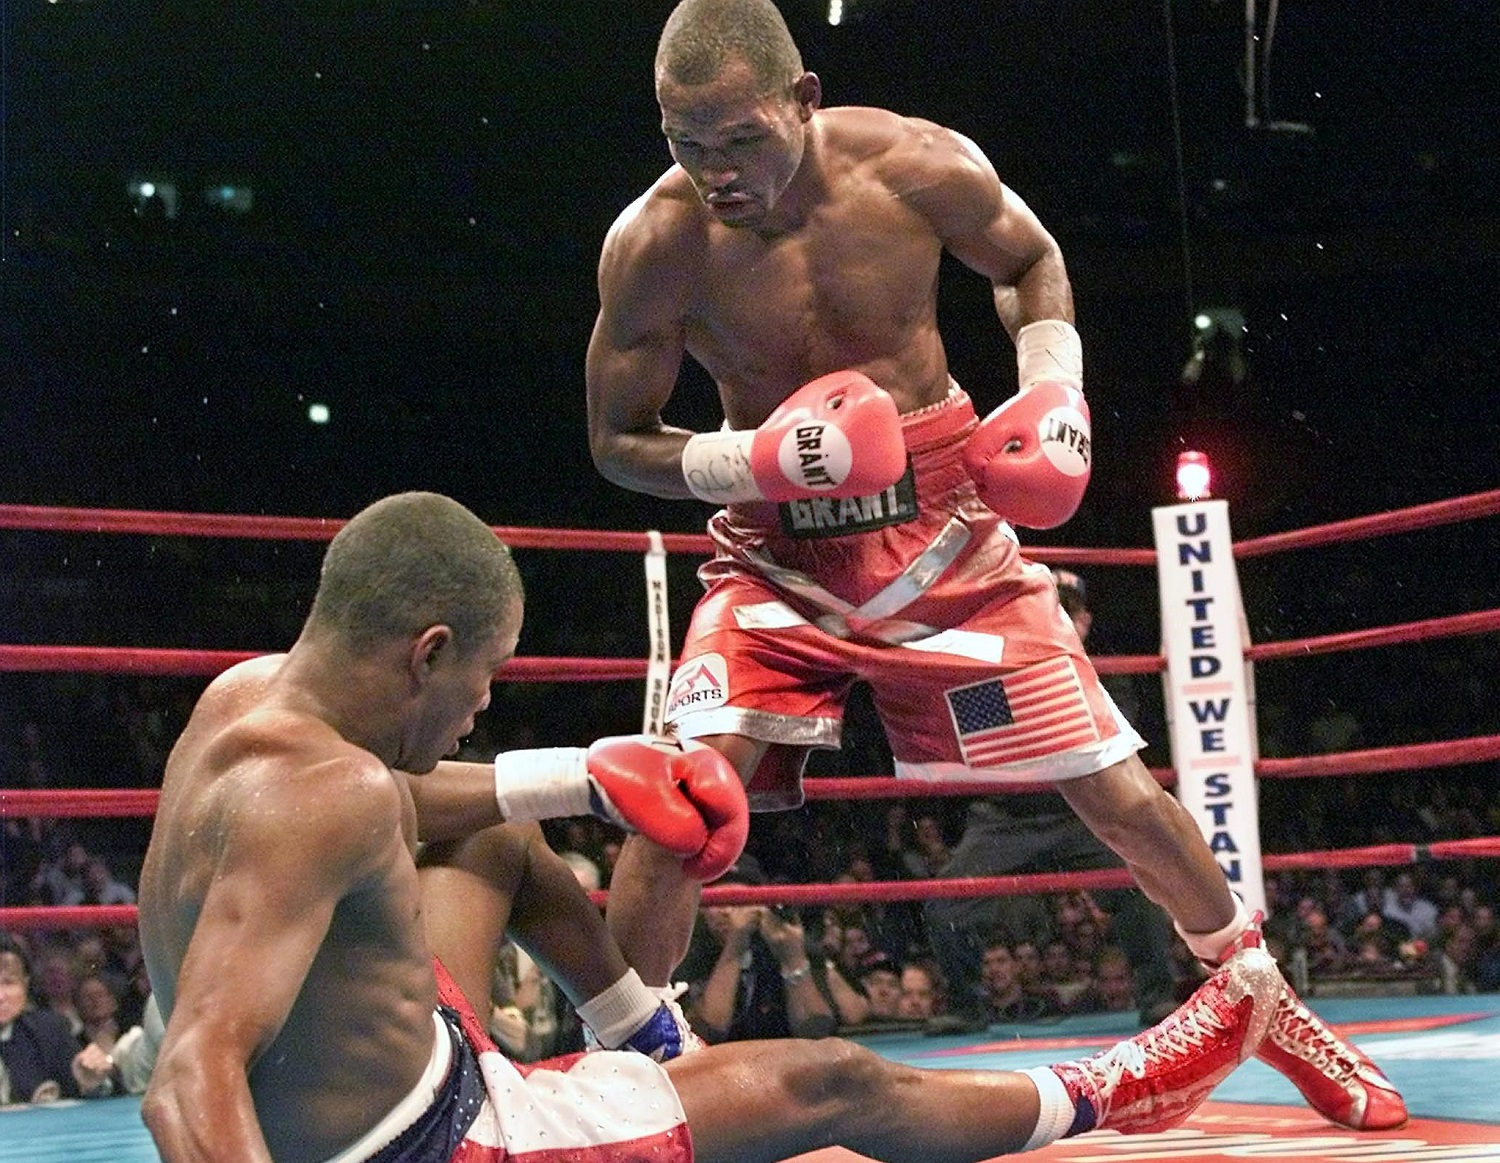 Bernard Hopkins, right, knocks down Felix Trinidad during their title unification match at Madison Square Garden on Sept. 29, 2001. Hopkins won by TKO in the 12th round to secure the undisputed middleweight championship. | Timothy A. Clary/AFP via Getty Images